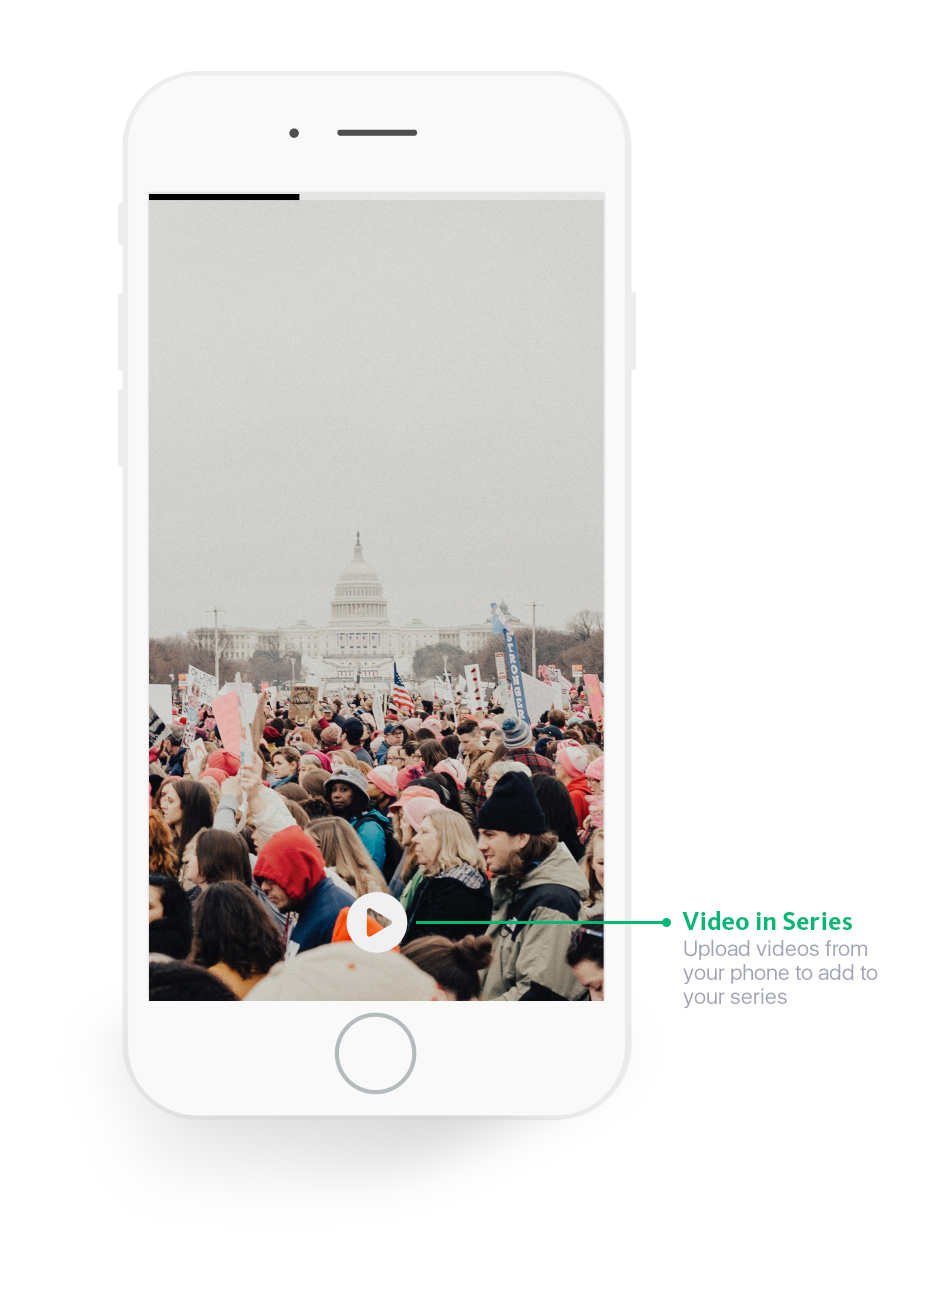 blog.medium.com - Press Play: Now You Can Add Videos to Your Series on Medium